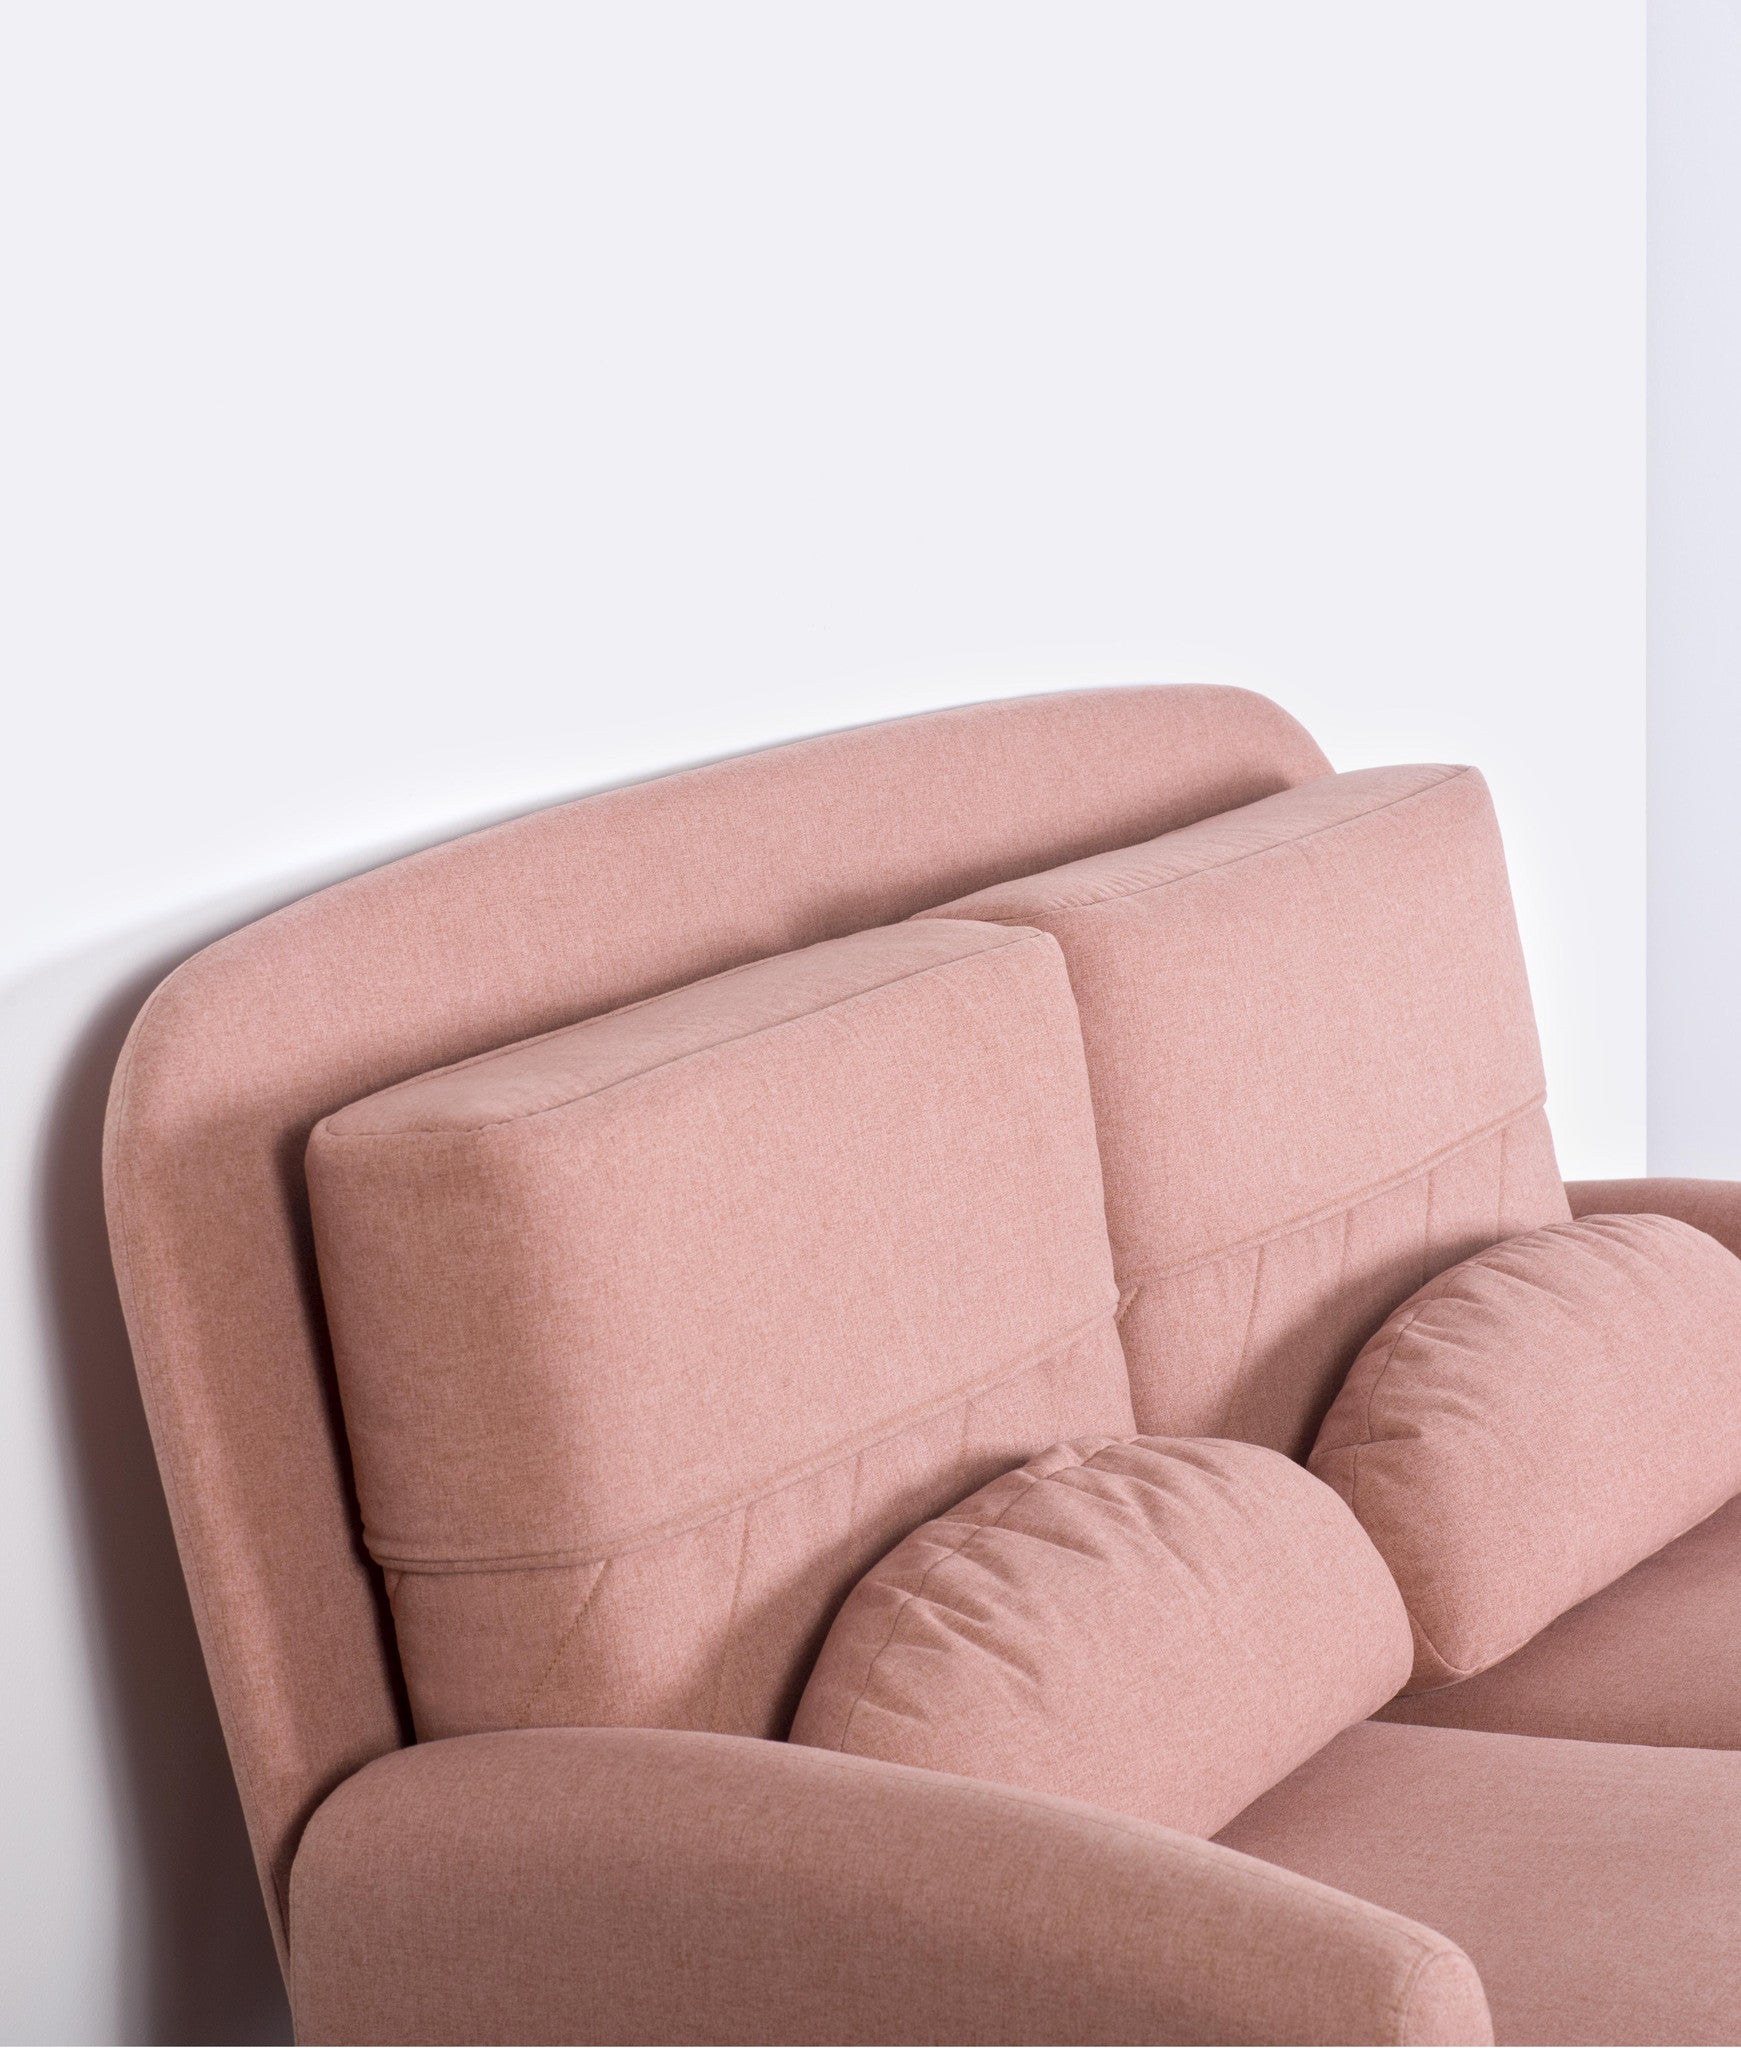 TURTLENECK SOFA - DOUBLE peach